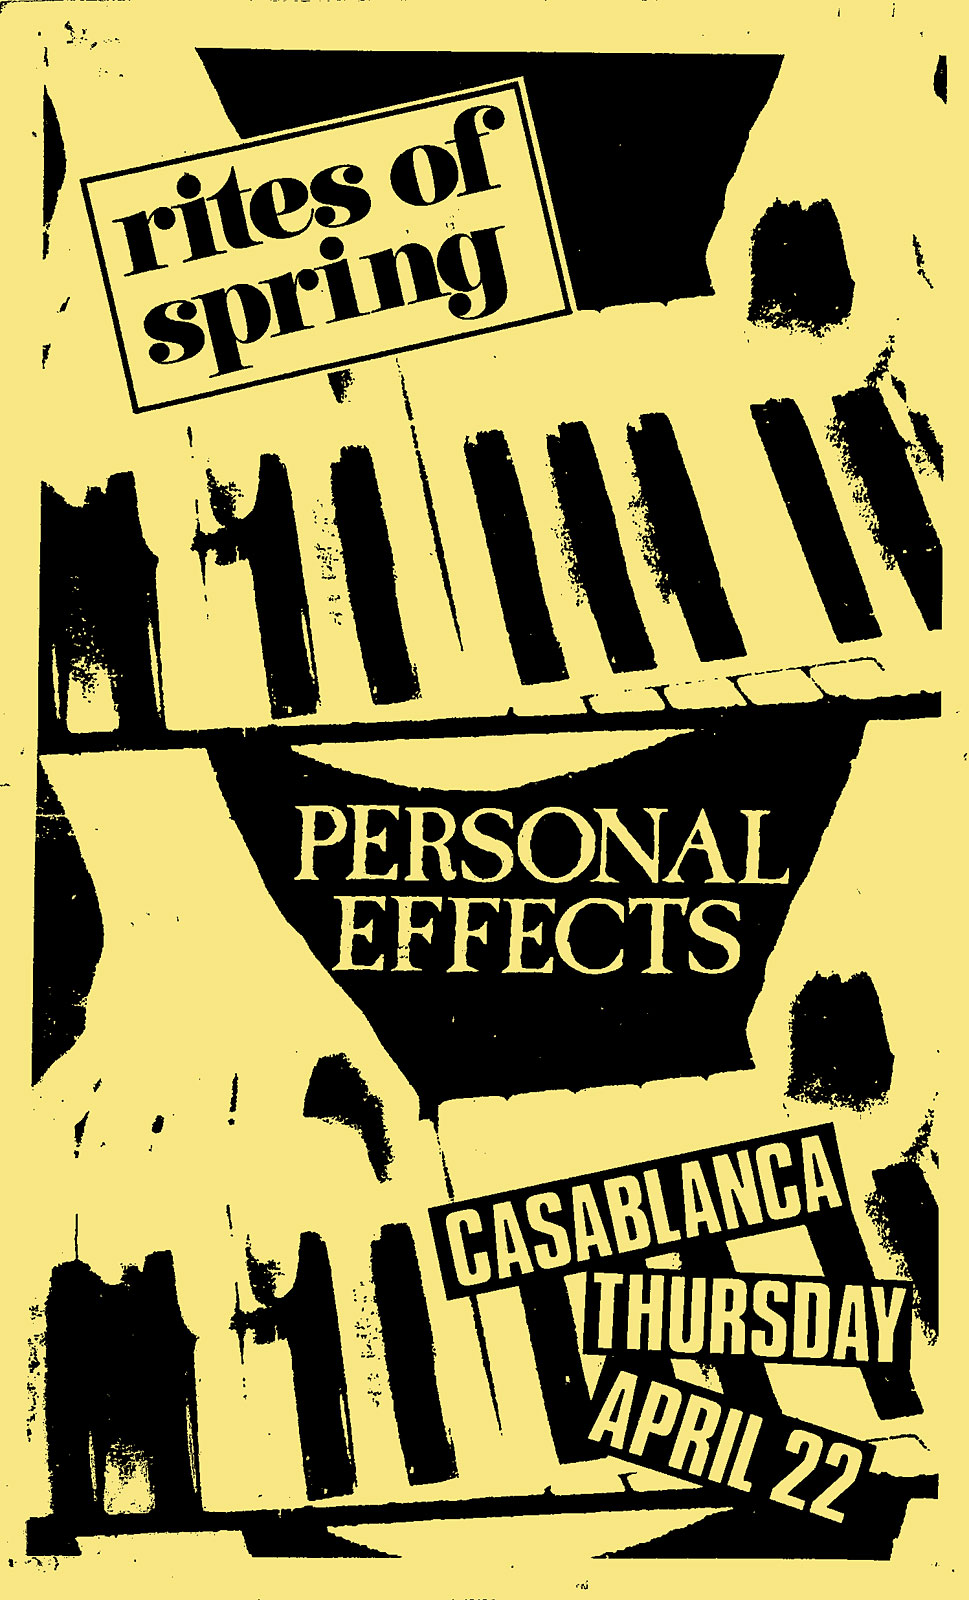 Poster for Personal Effects at Casablanca in Rochester, New York on 04.22.1982